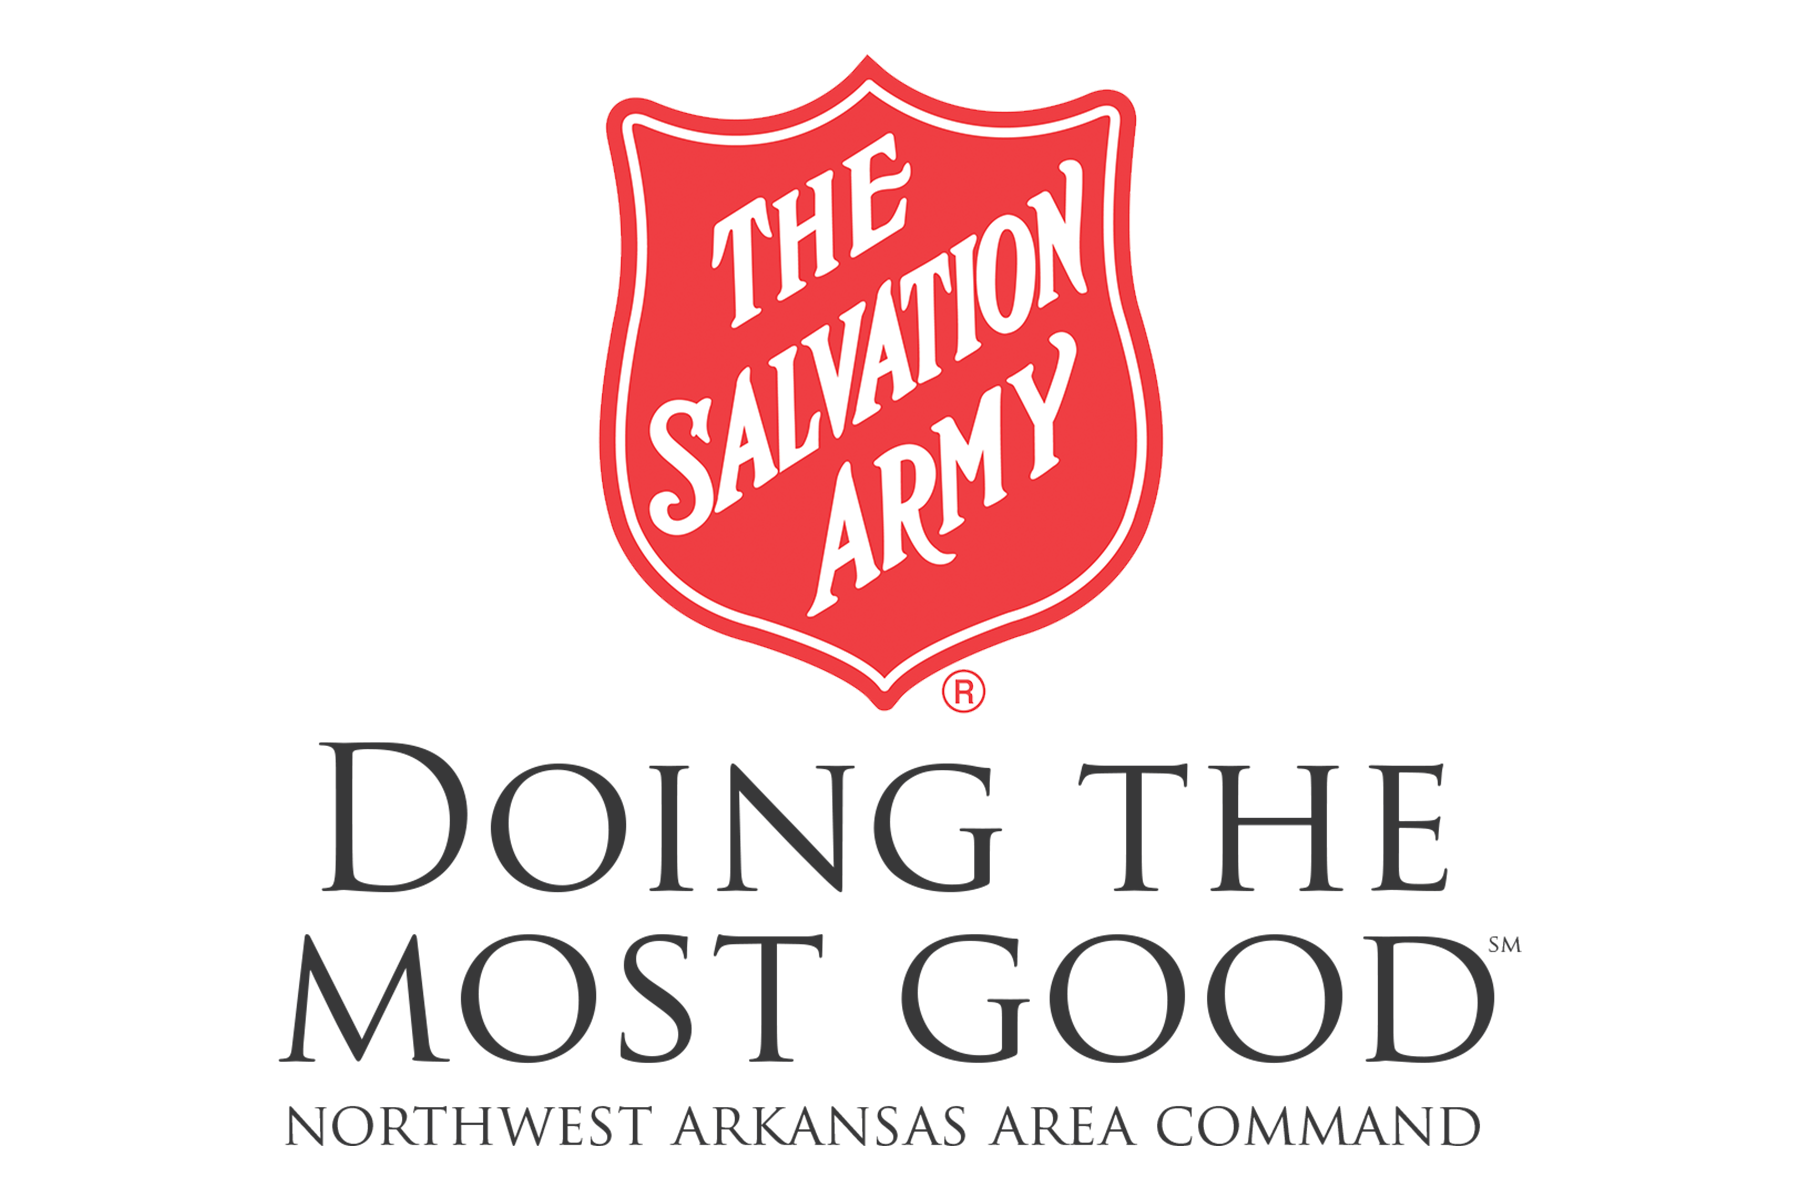 salvation army logo_1494271395732.png